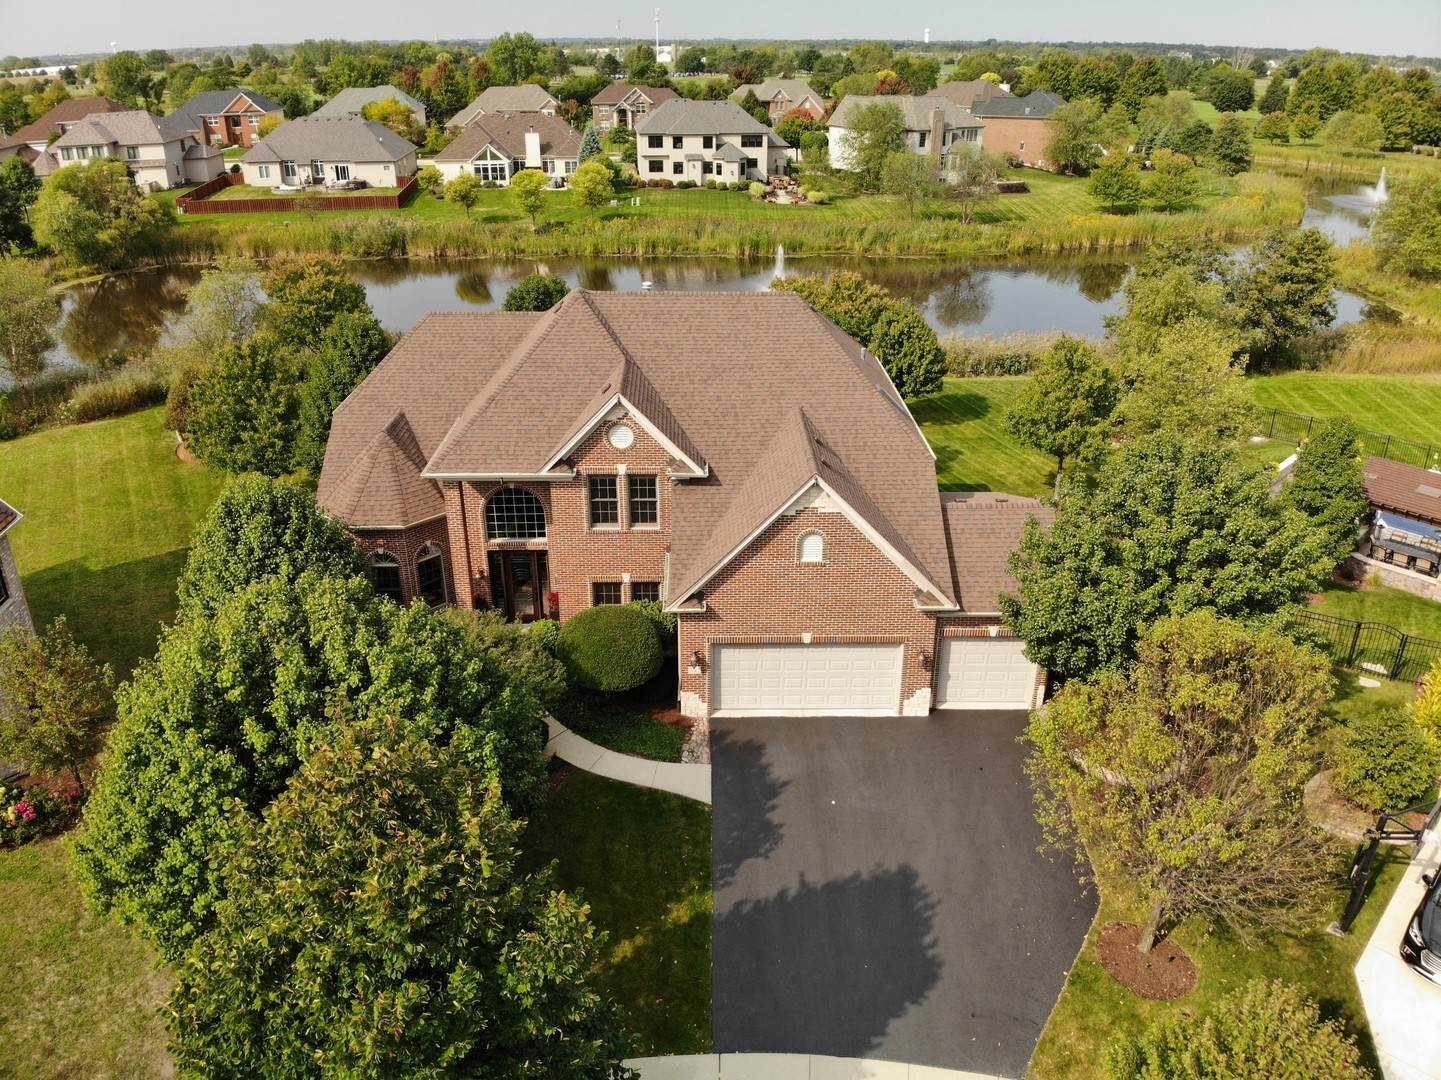 Single Family Homes for Sale at 5 Heather Court Bolingbrook, Illinois 60490 United States